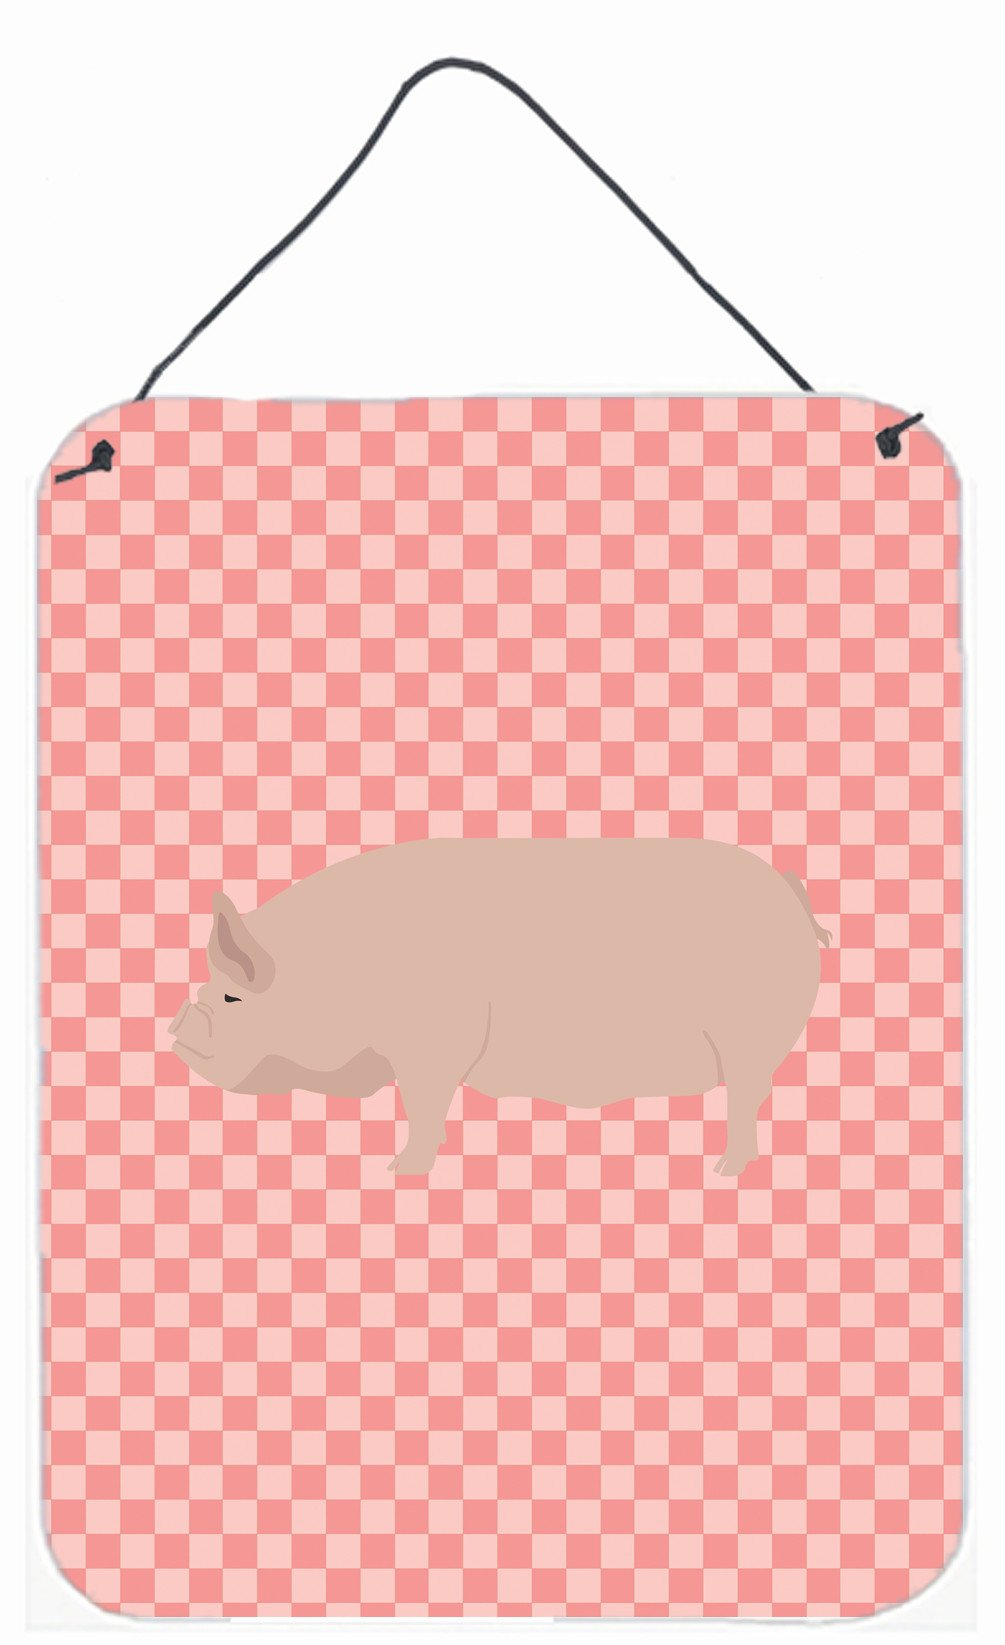 Welsh Pig Pink Check Wall or Door Hanging Prints BB7937DS1216 by Caroline's Treasures